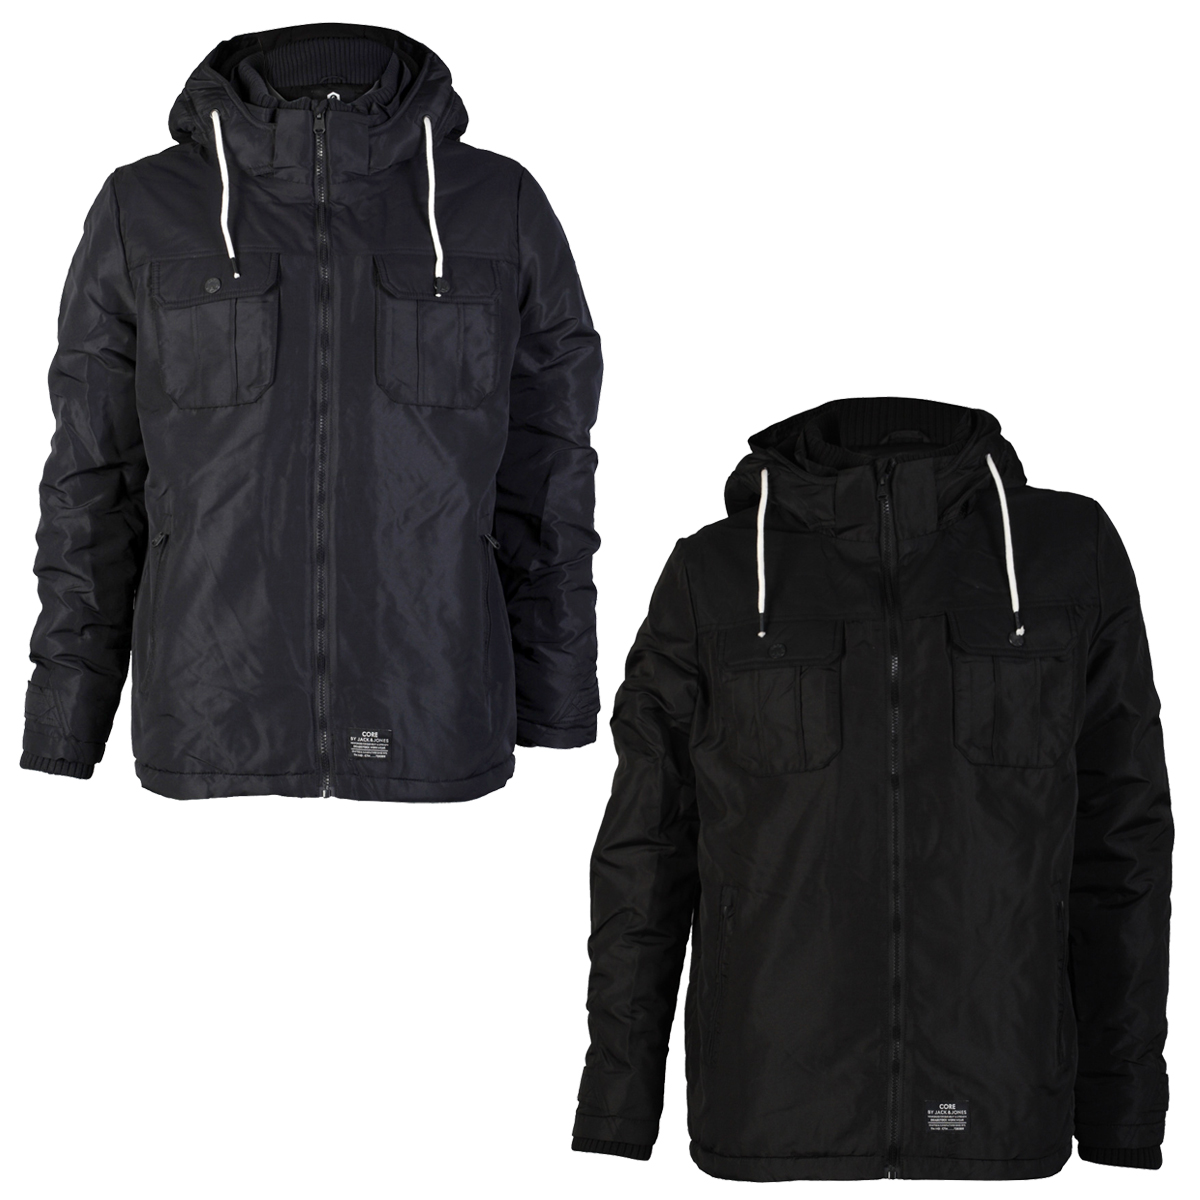 mens core jack amp jones grand designer waterproof winter jacket coat. Black Bedroom Furniture Sets. Home Design Ideas